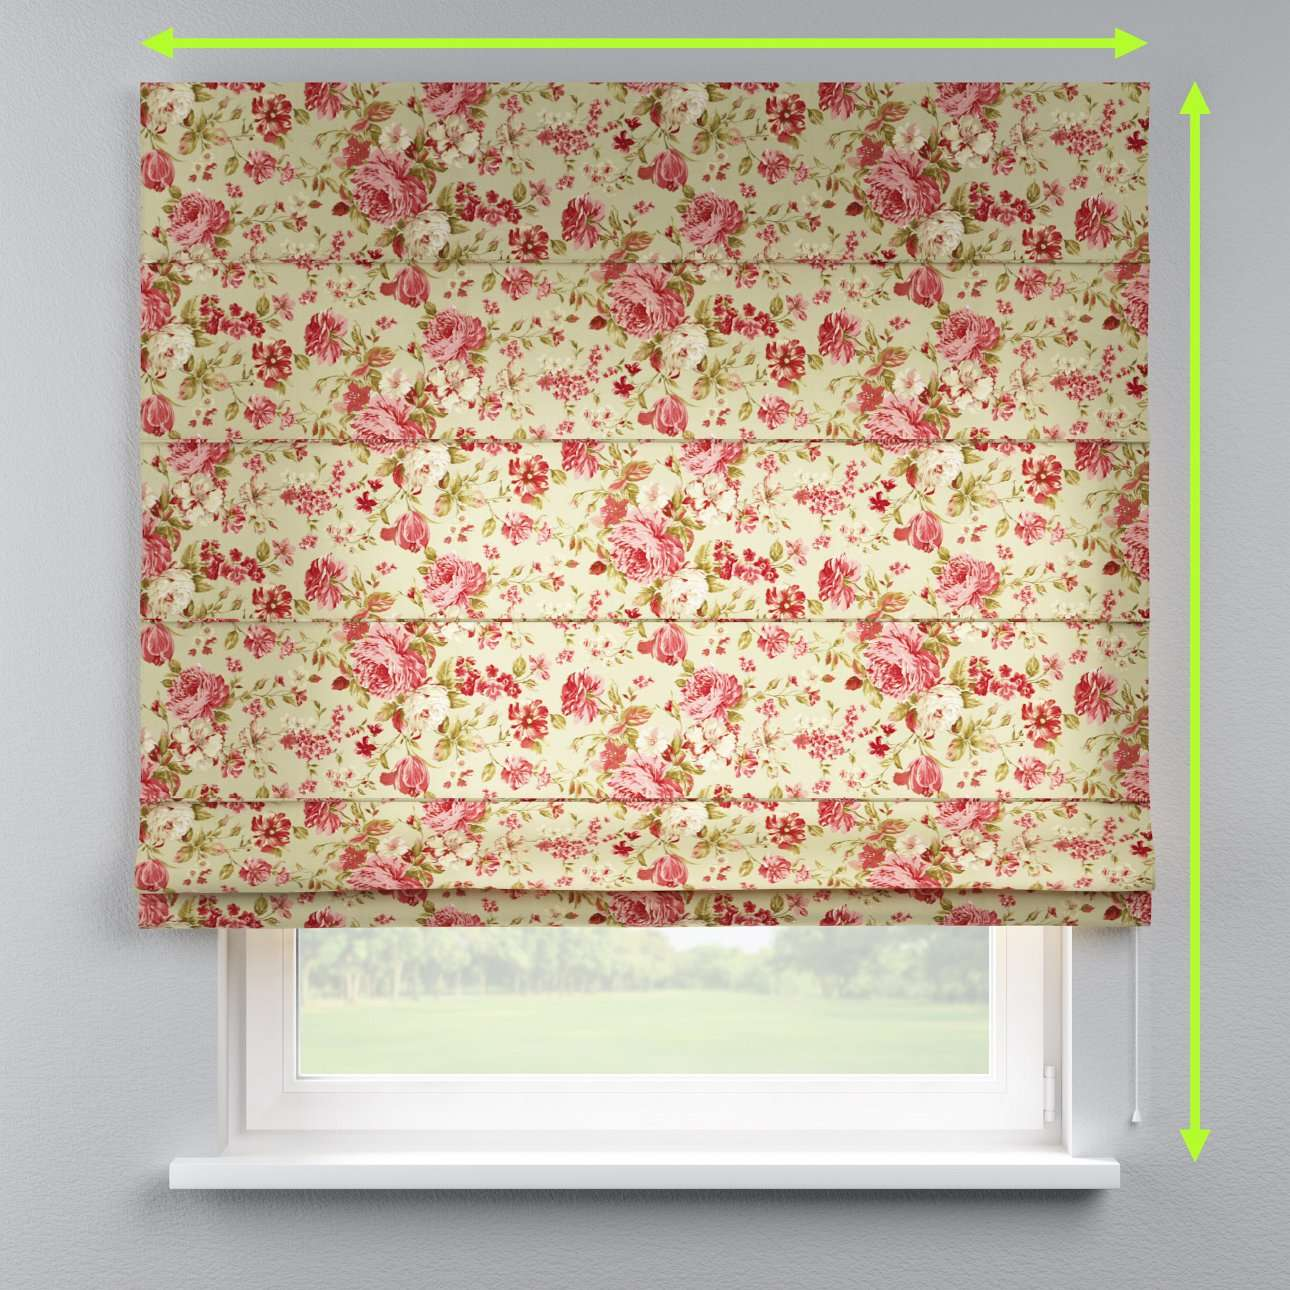 Capri roman blind in collection Flowers, fabric: 311-06